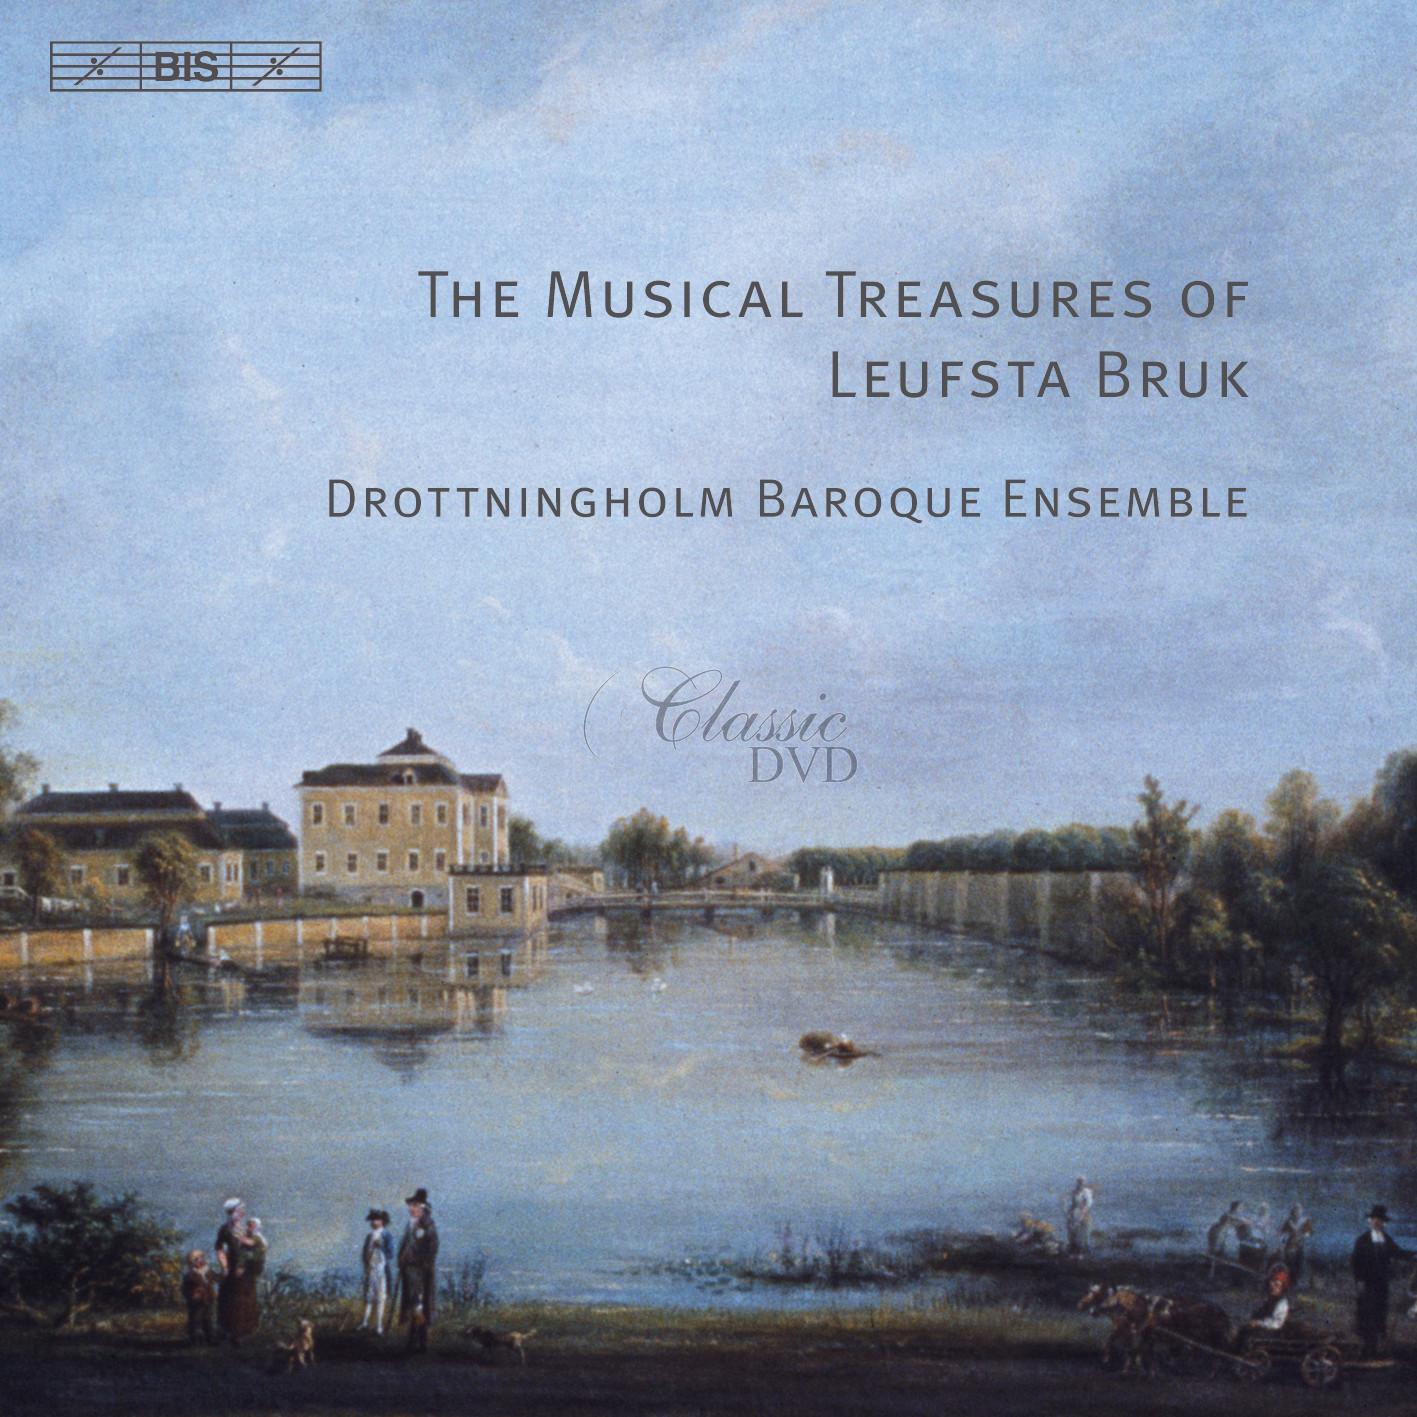 The Musical Treasures of Leufsta Bruk (CD)